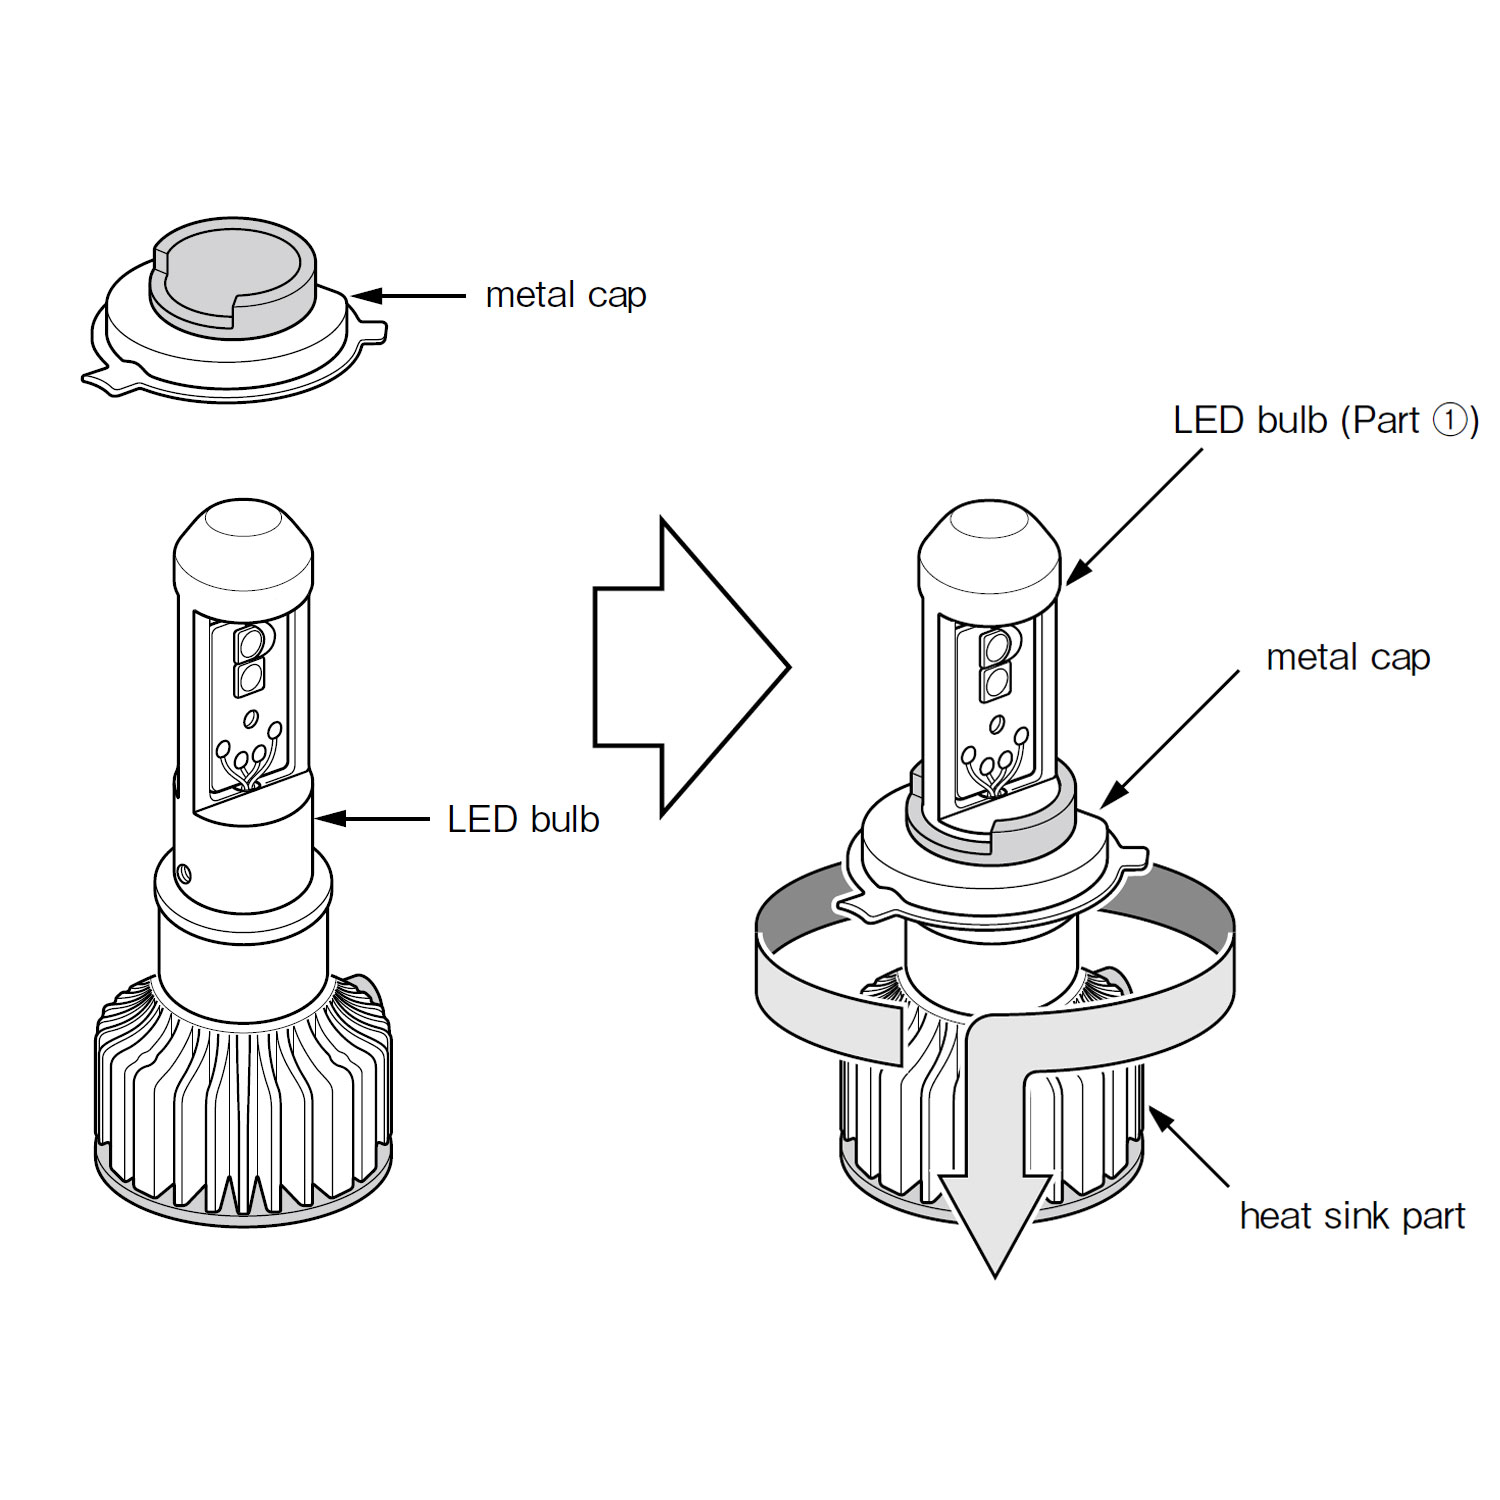 Wiring Diagram For H4 Led Bulb - Wiring Diagram M2 on